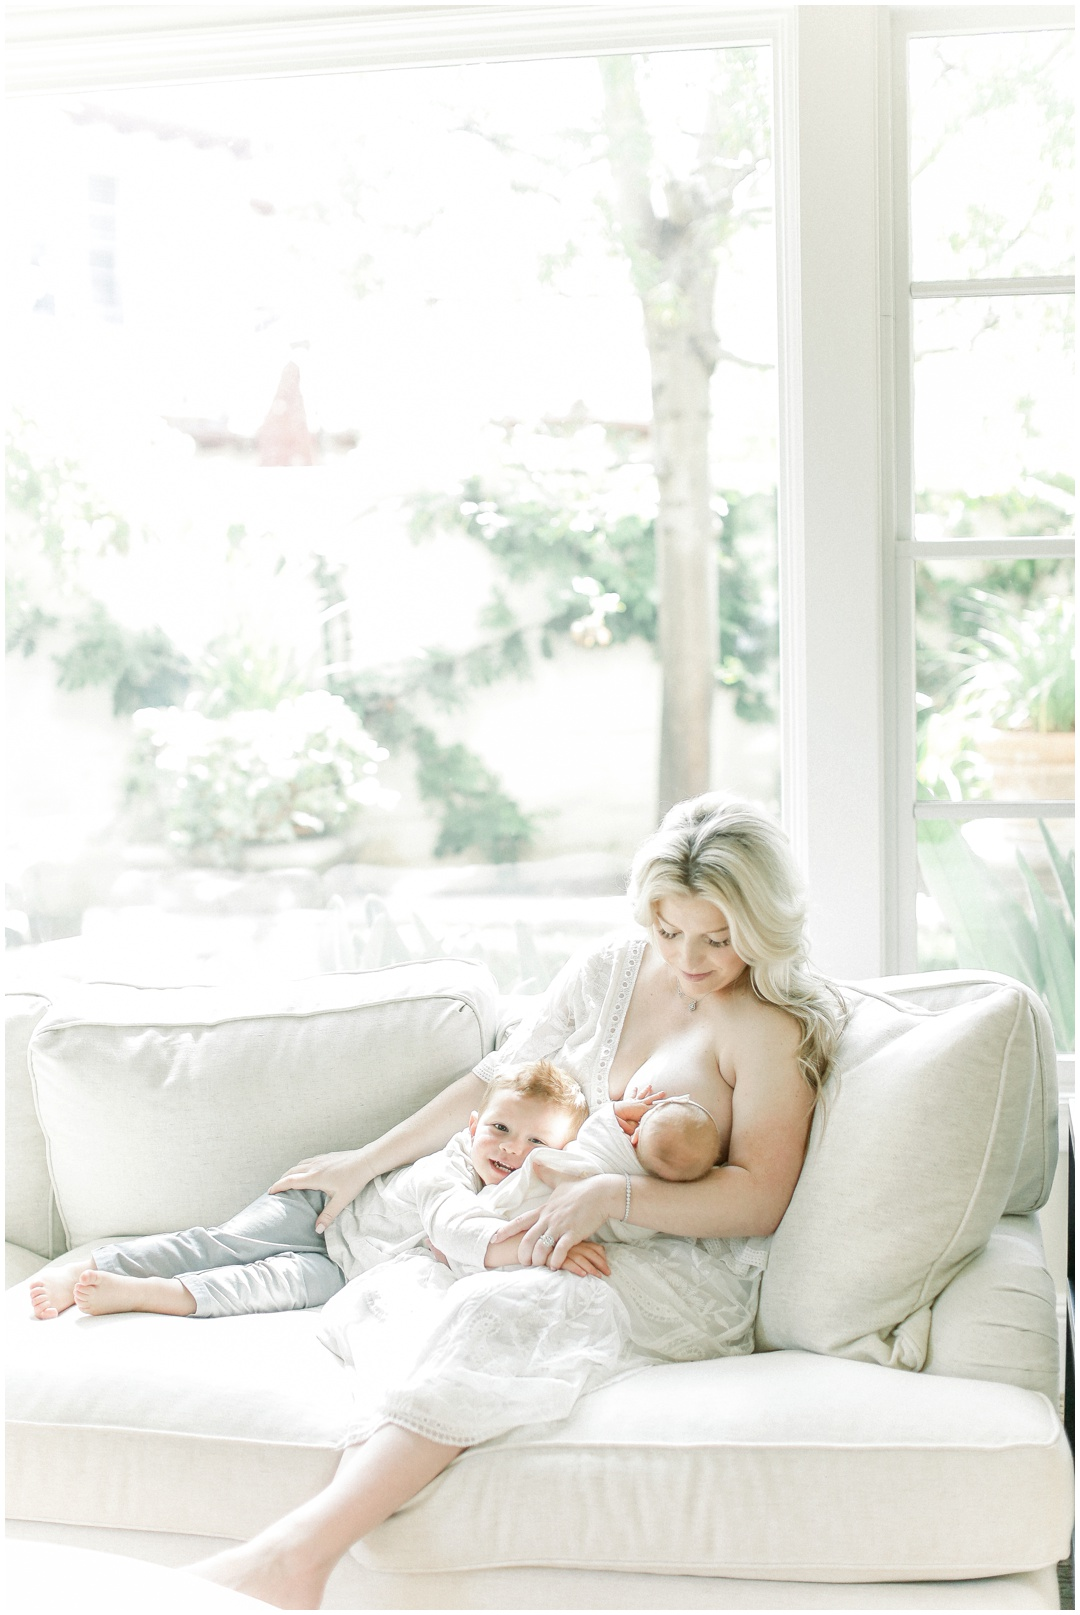 Newport_Beach_Newborn_Light_Airy_Natural_Photographer_Newport_Beach_Photographer_Orange_County_Family_Photographer_Cori_Kleckner_Photography_Newport_Beach_Photographer_newborn_kole_calhoun56_kole_calhoun_Jennifer_Calhoun_Knox_Calhoun_3760.jpg